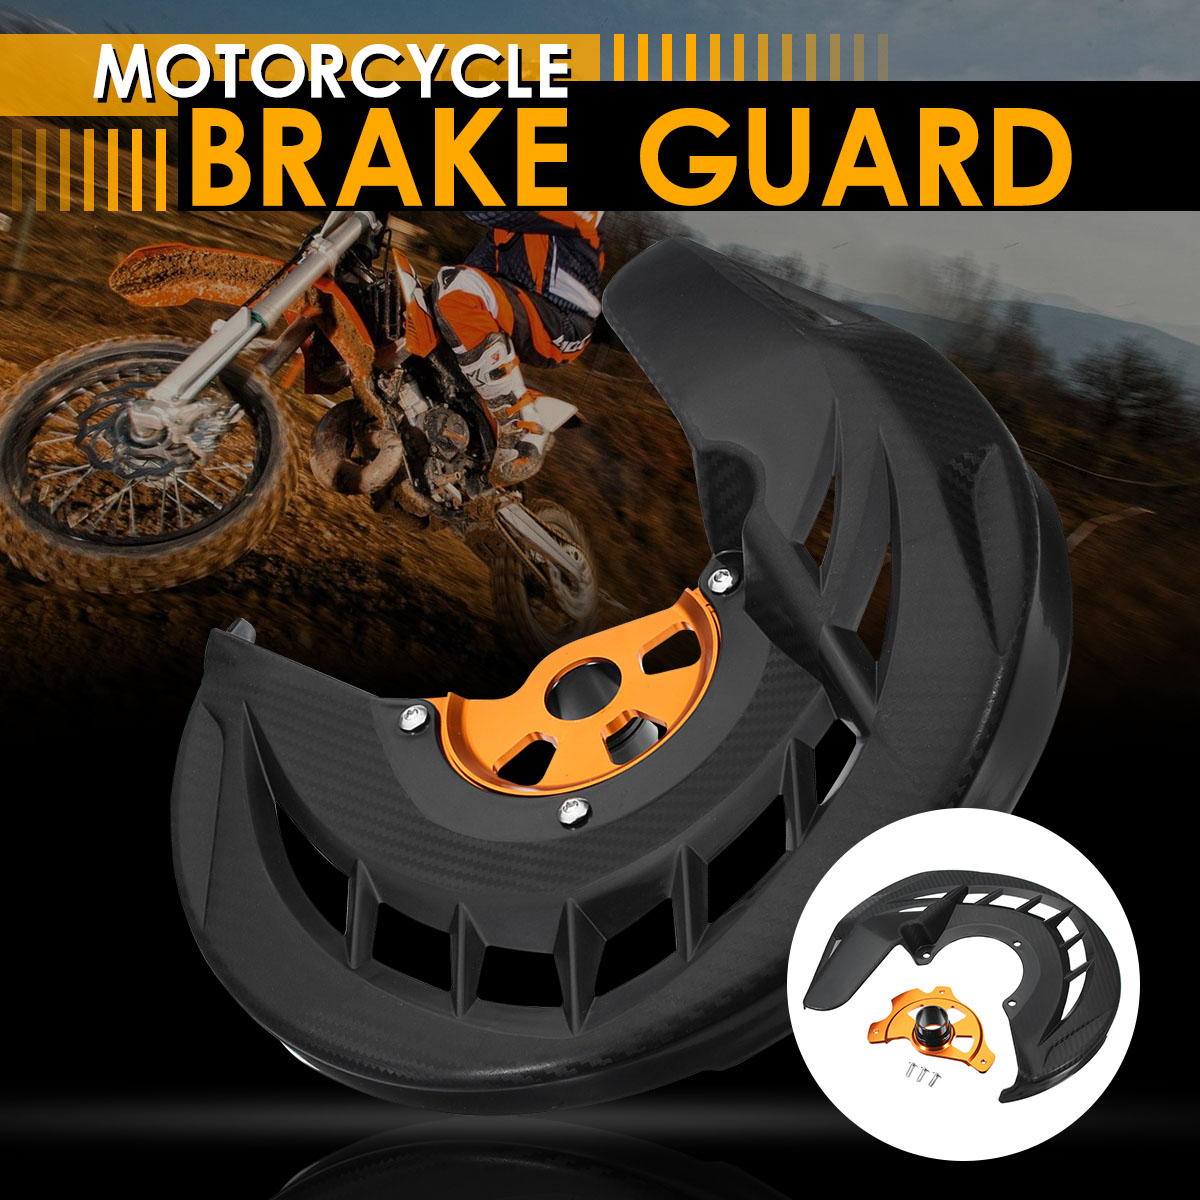 Motorcycle Front Brake Protector Cover Brake Disc Rotor Guard Brake For KTM 125-530 EXC/EXCF 03-15 125-530 SX/SXF/XC/XCF 03-14 motorcycle front brake disc rotor guard brake cover brake protector for ktm 125 530 sx sxf xc xcf 03 14 125 530 exc excf 03 15